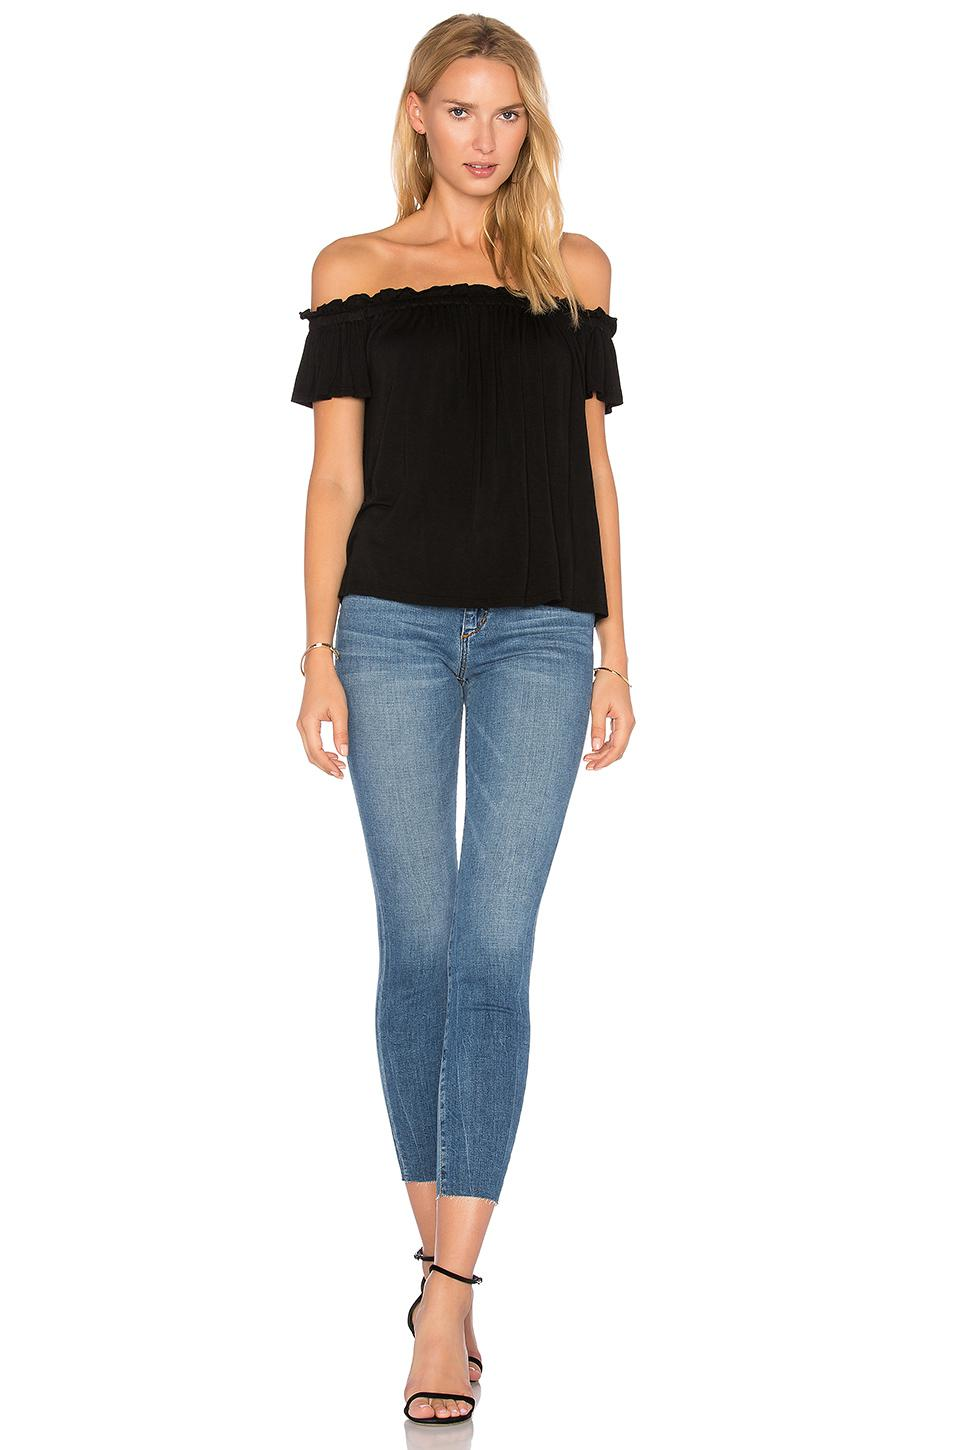 NYTT Synthetic Off Shoulder Ruffle Top in Black